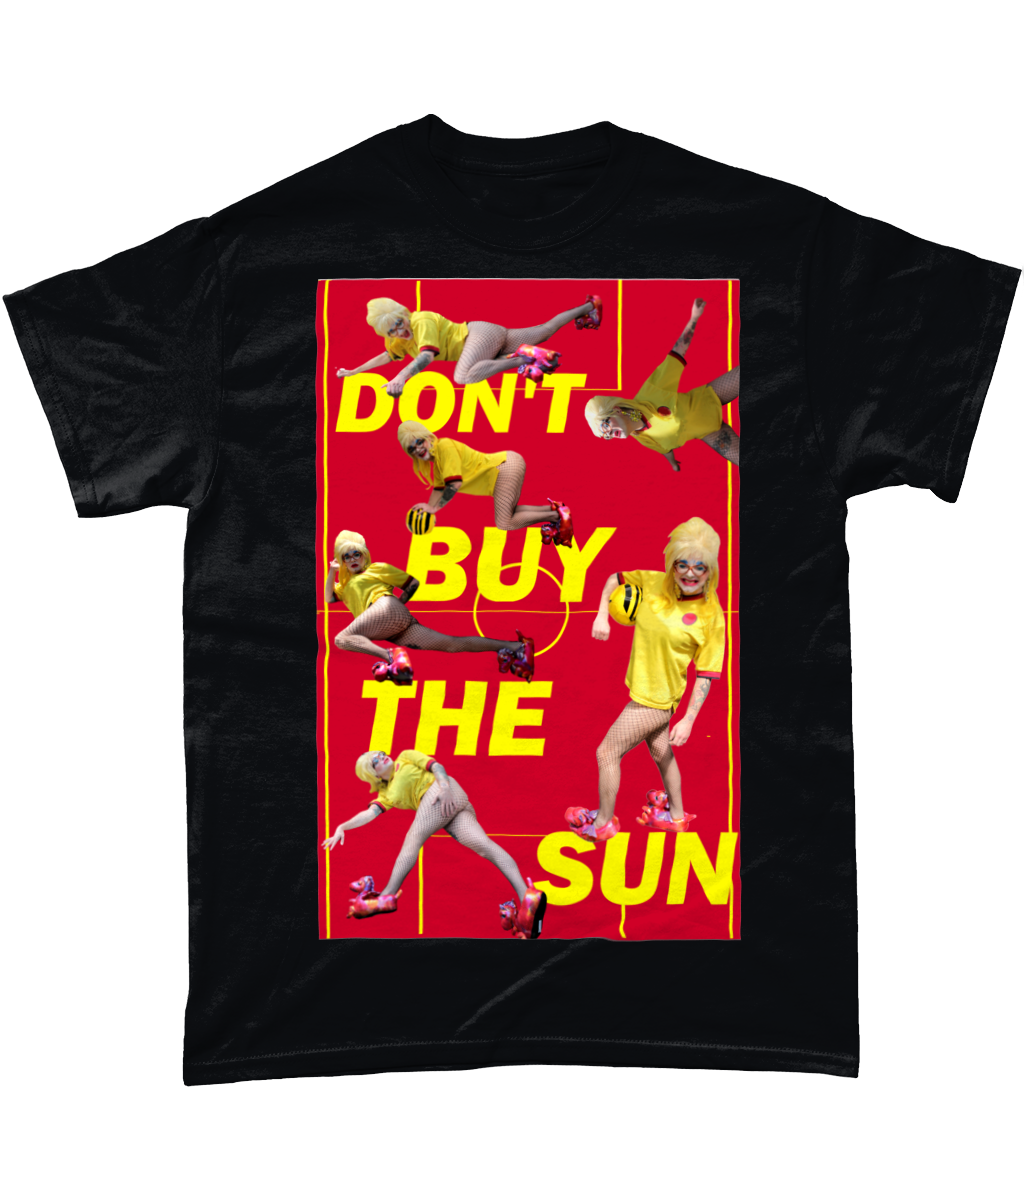 Meating People Is Easy // Ginny Lemon - Official Merch - Don't Buy The Sun Tee